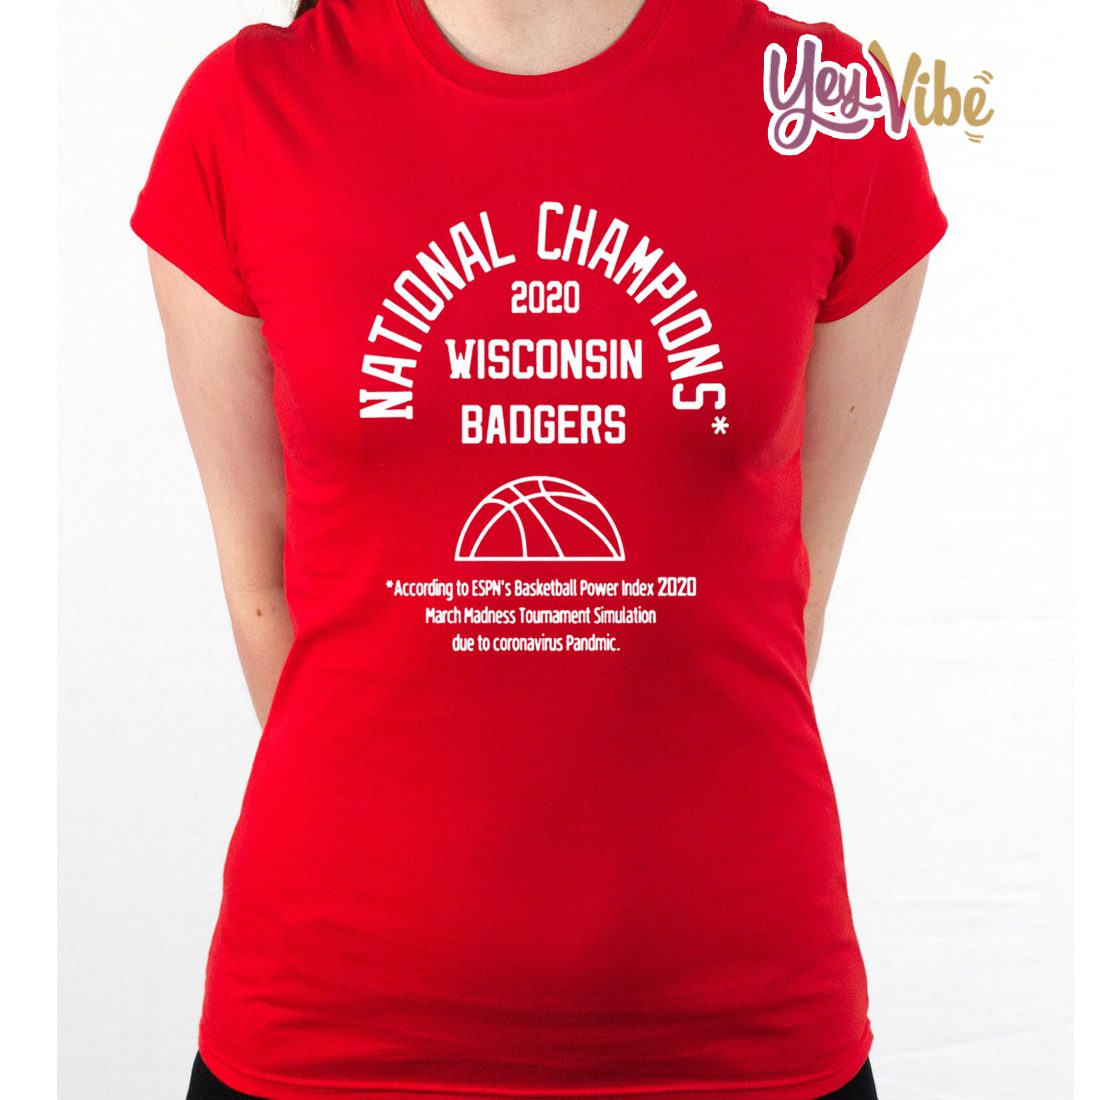 2020 NATIONAL CHAMPIONS WISCONSIN BADGERS SHIRT